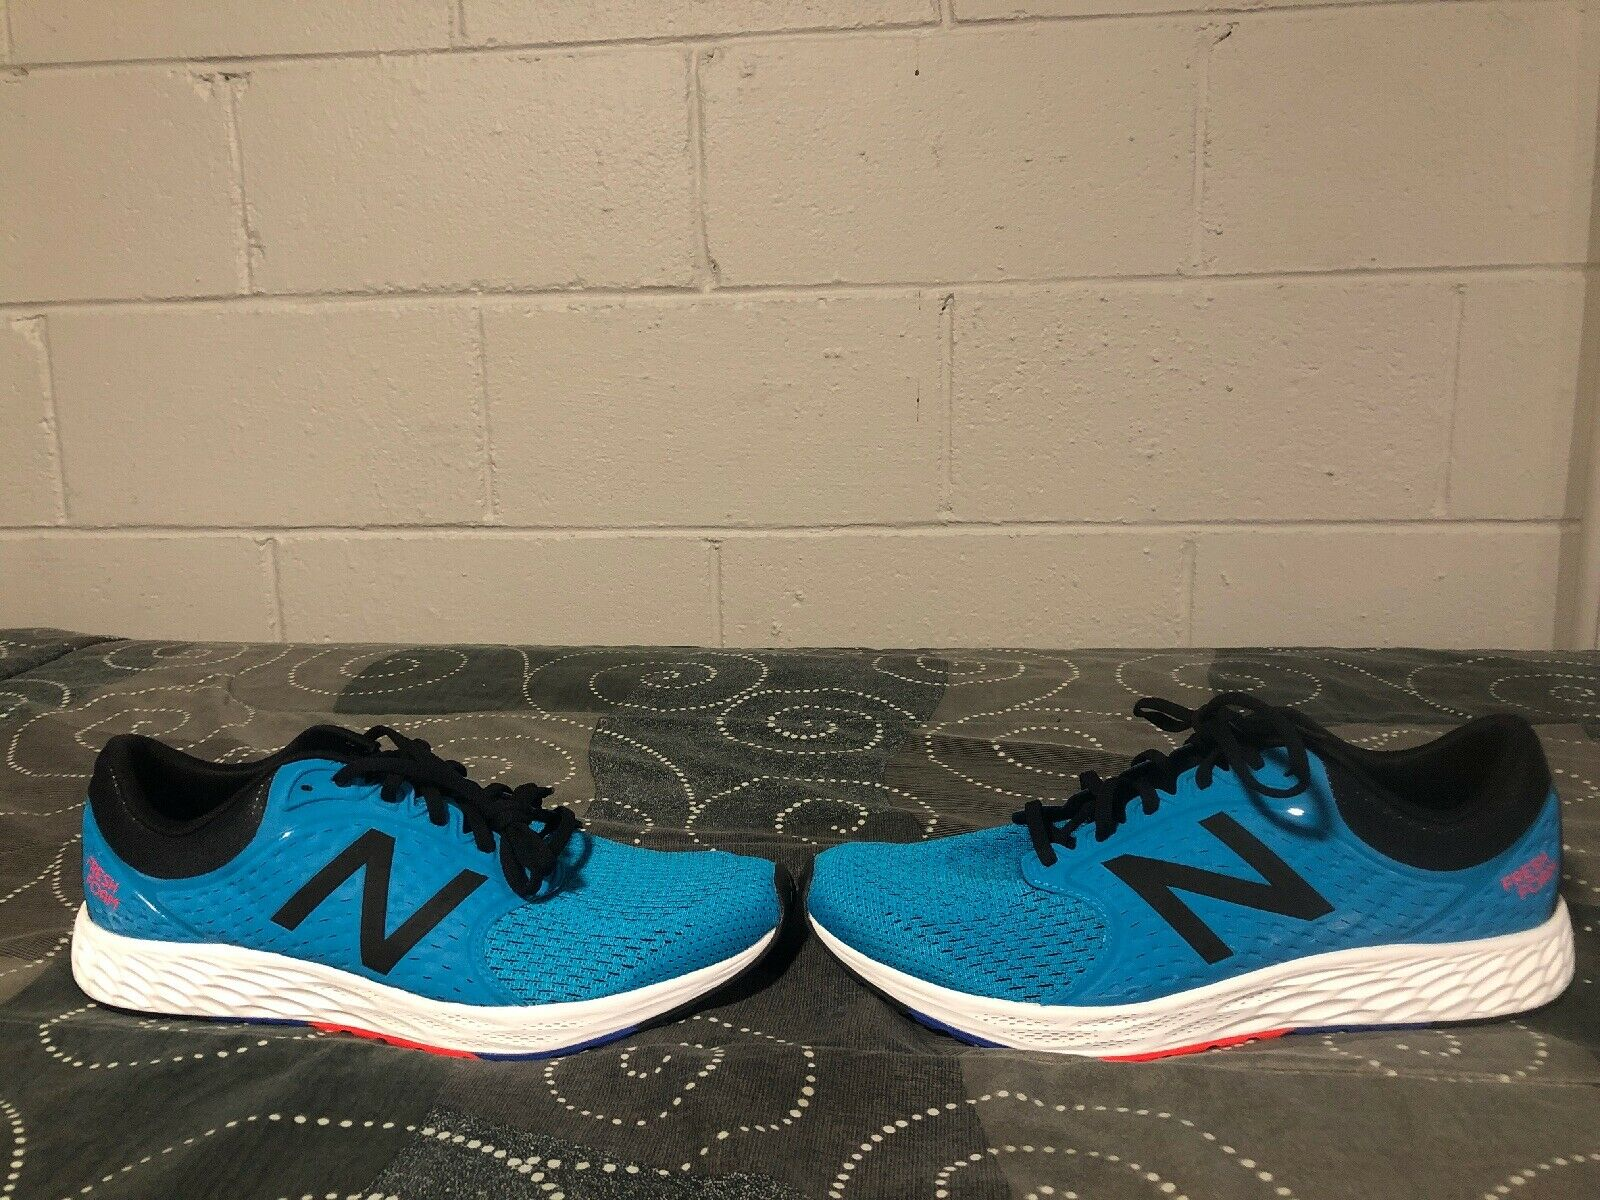 New Balance Fresh Foam Zante v4 Mens Running Training shoes Size 12 bluee Black